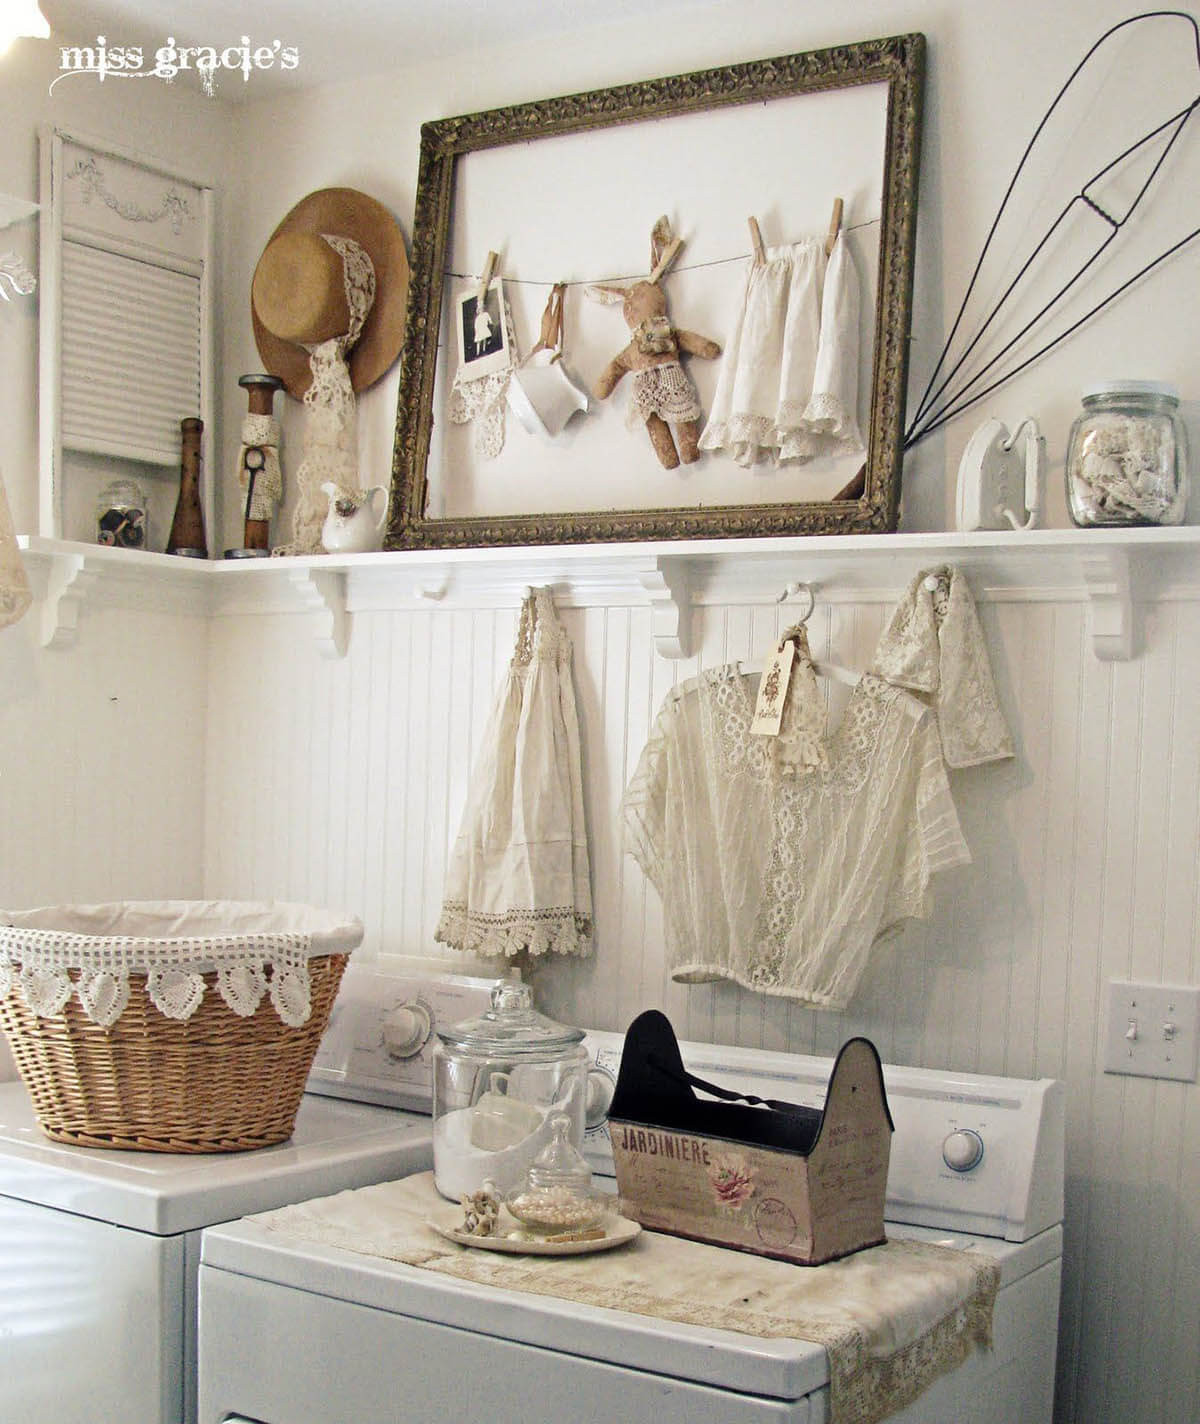 Best ideas about Laundry Room Decor . Save or Pin 25 Best Vintage Laundry Room Decor Ideas and Designs for 2019 Now.